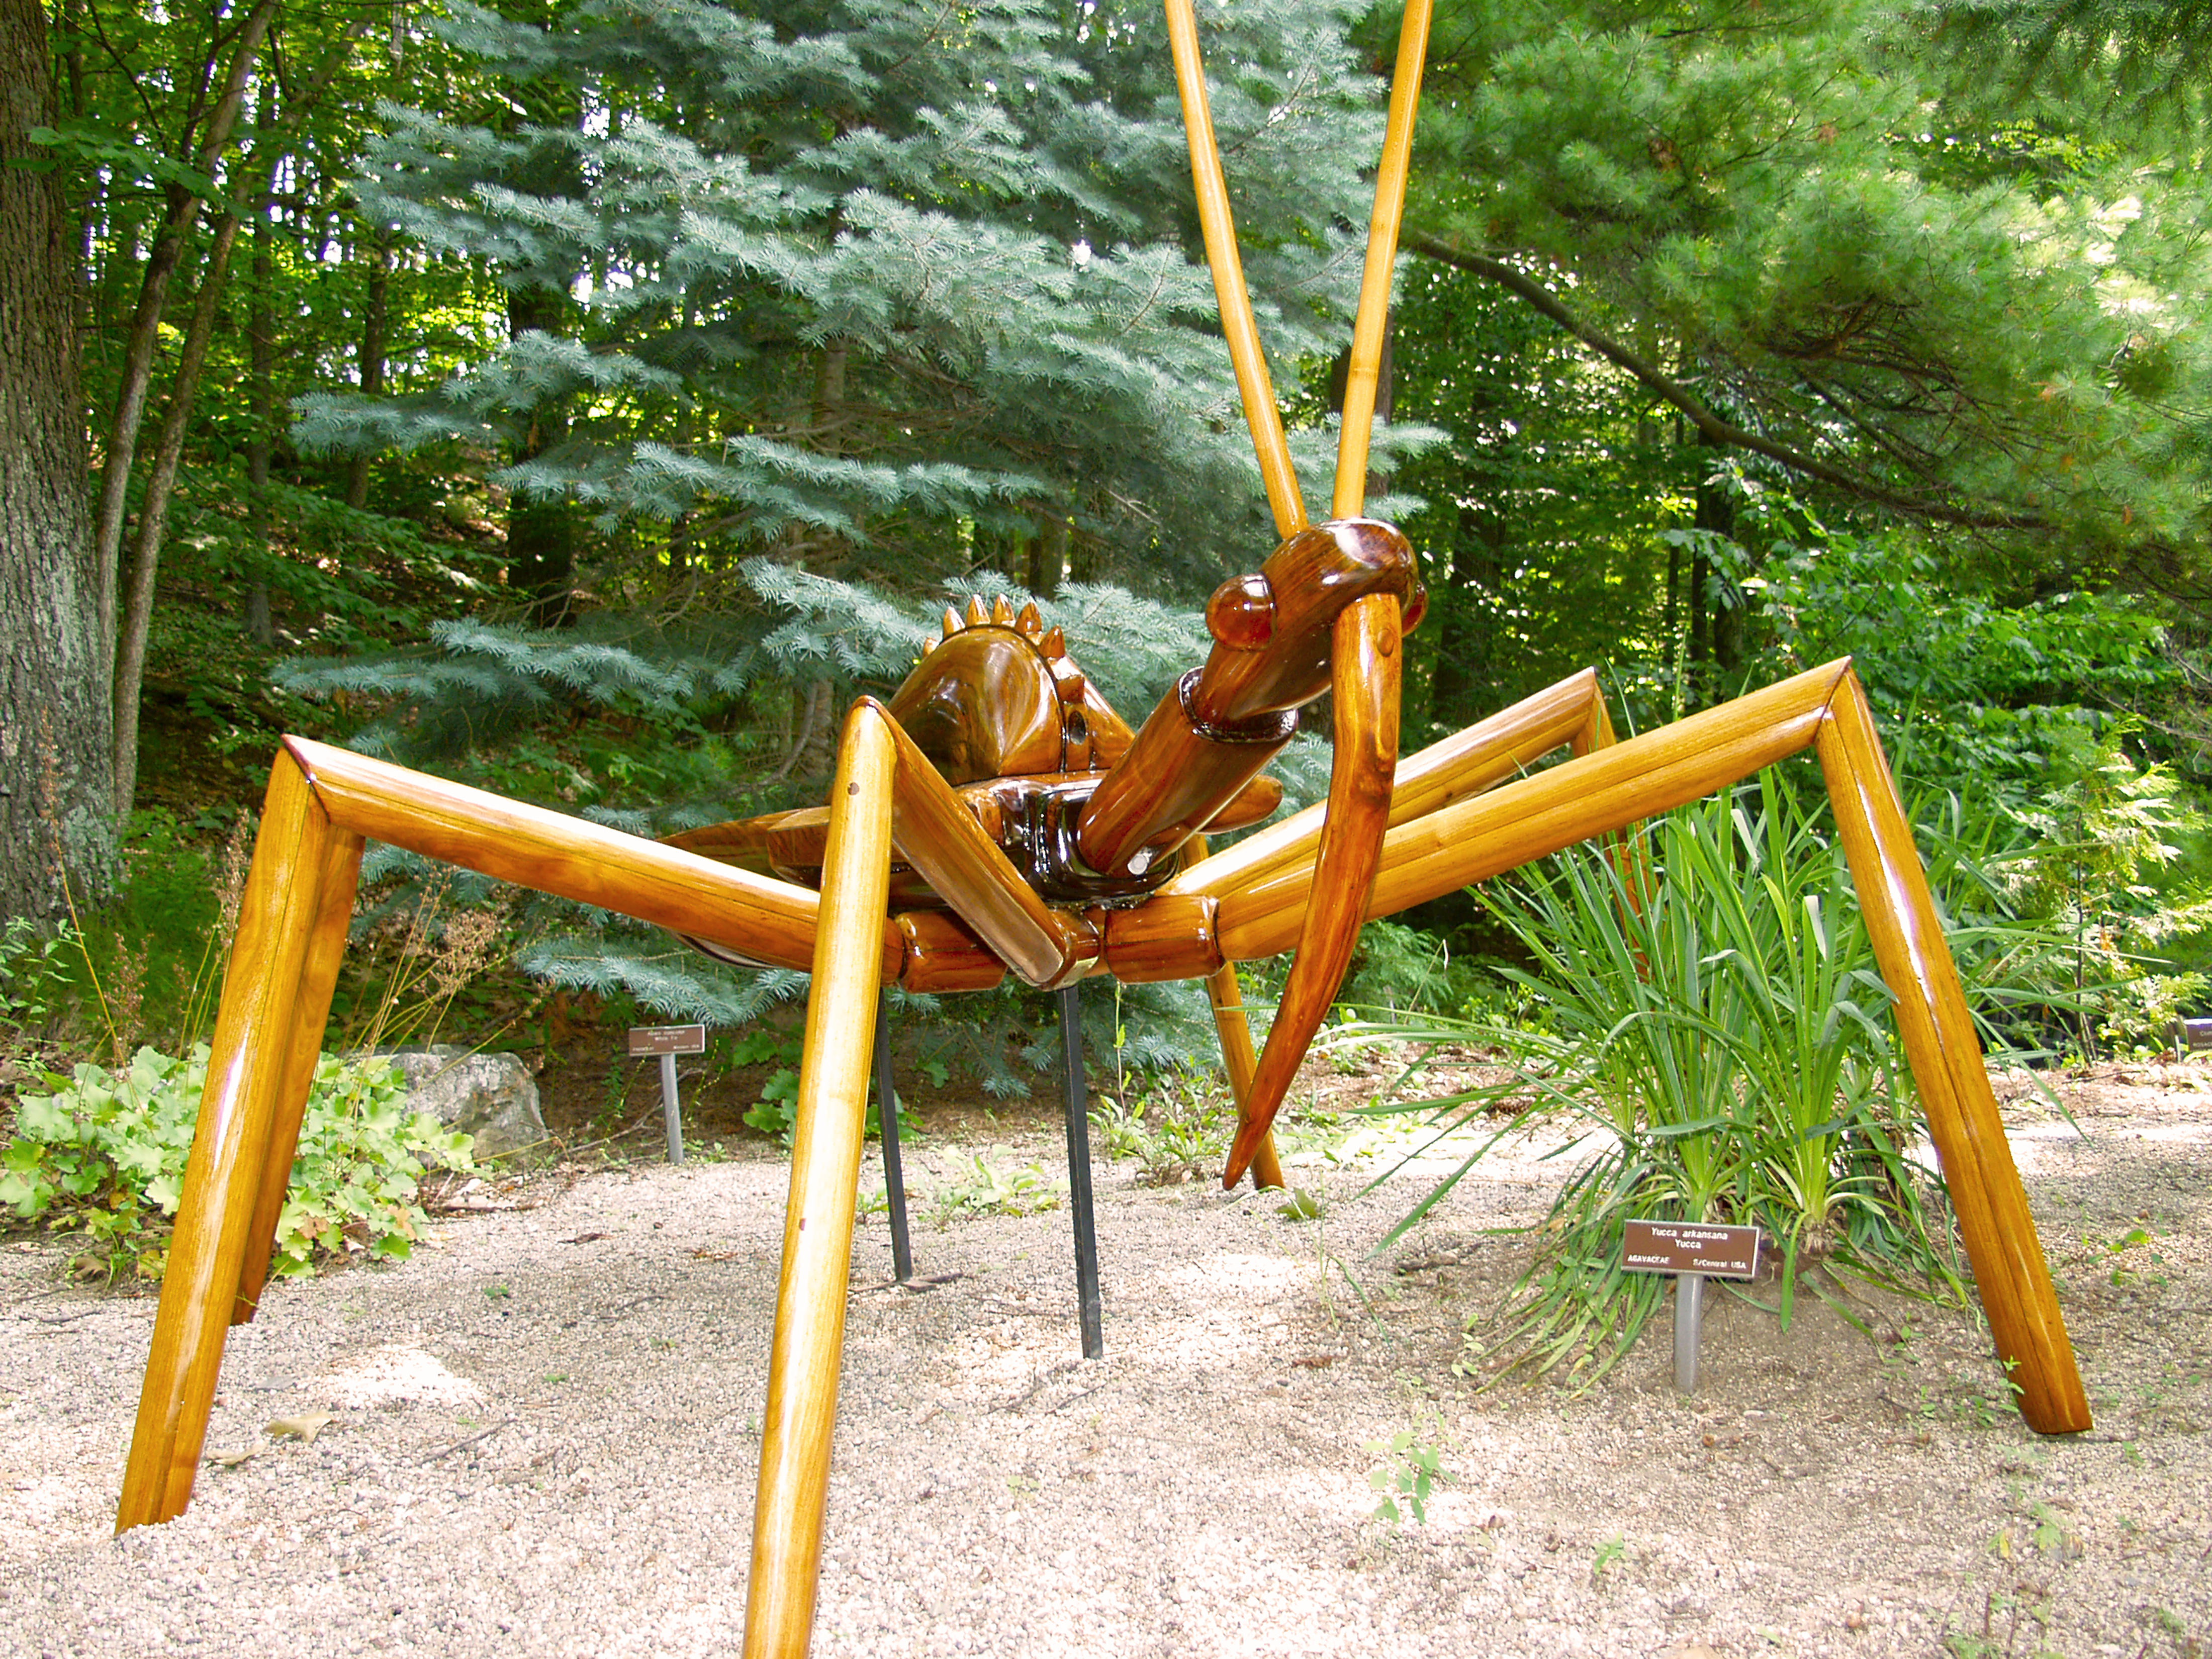 Summer Exhibit: Big Bugs at Fernbank Museum of Natural History in Atlanta